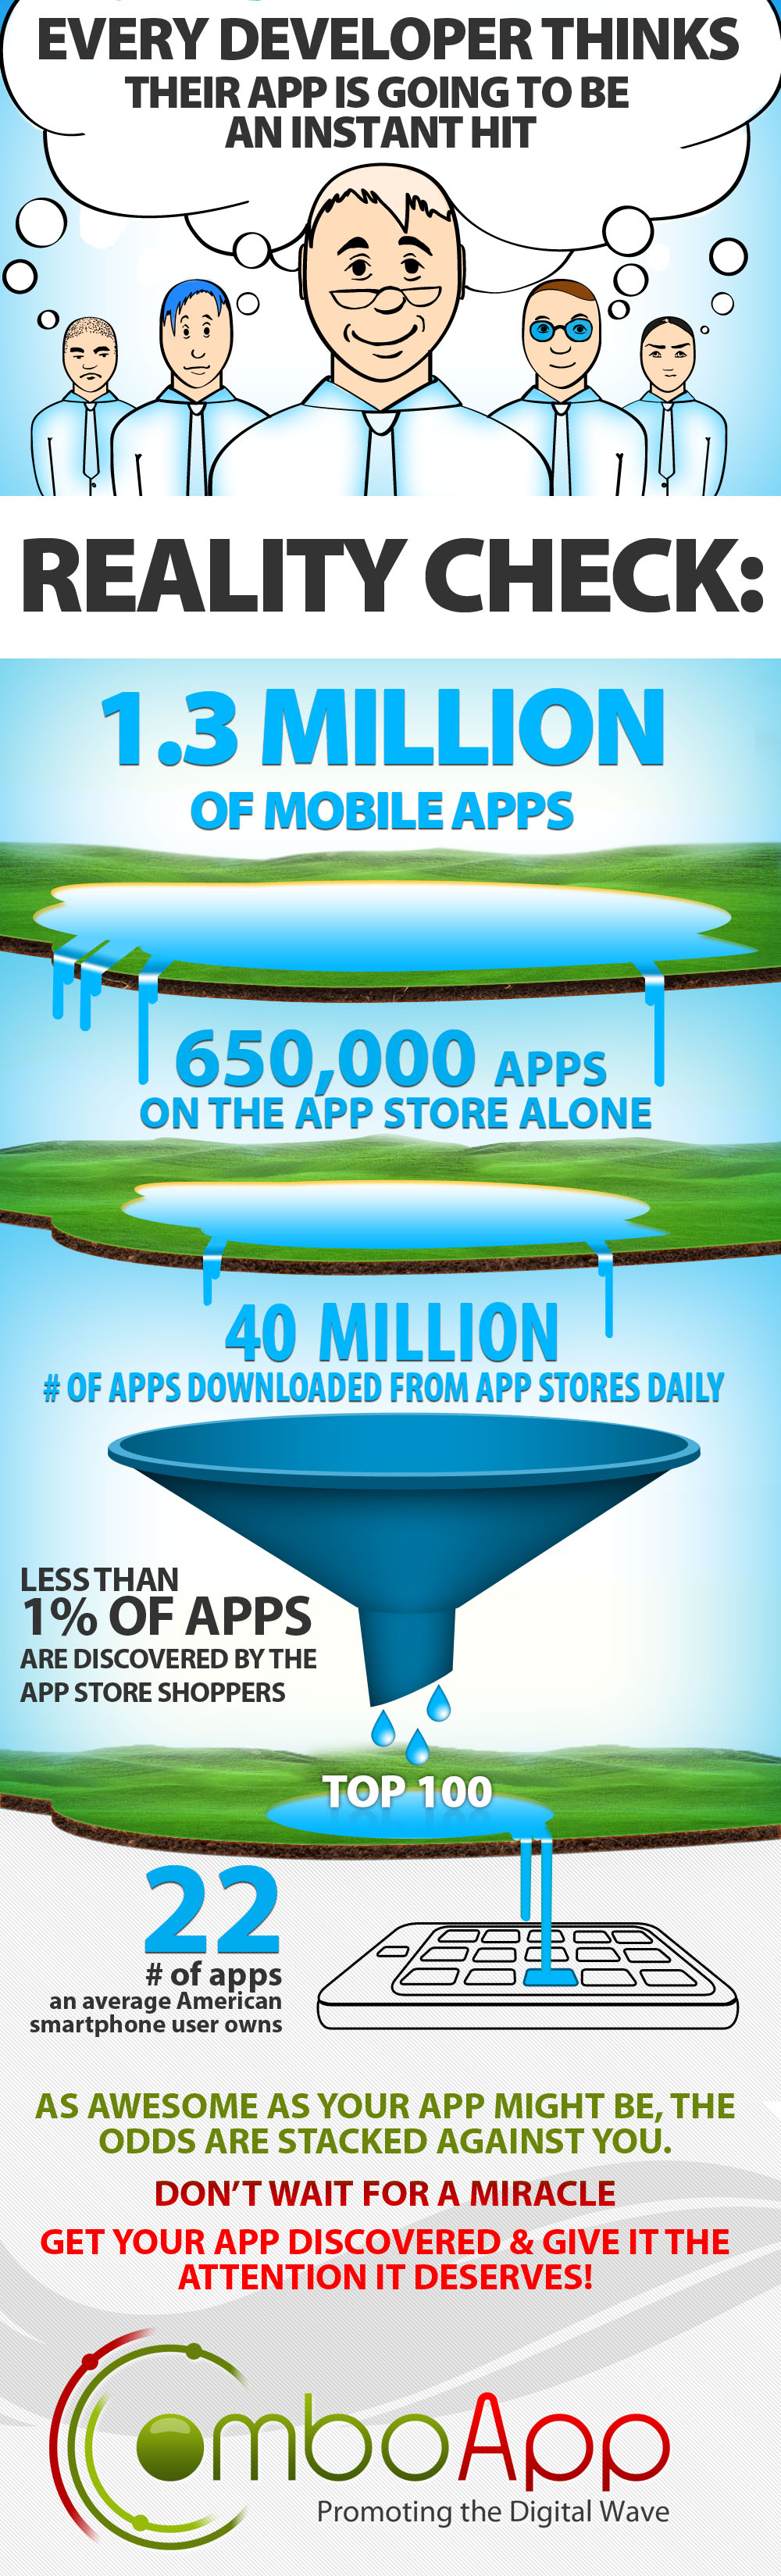 Battlefield App Store the fight for an app user's pocket